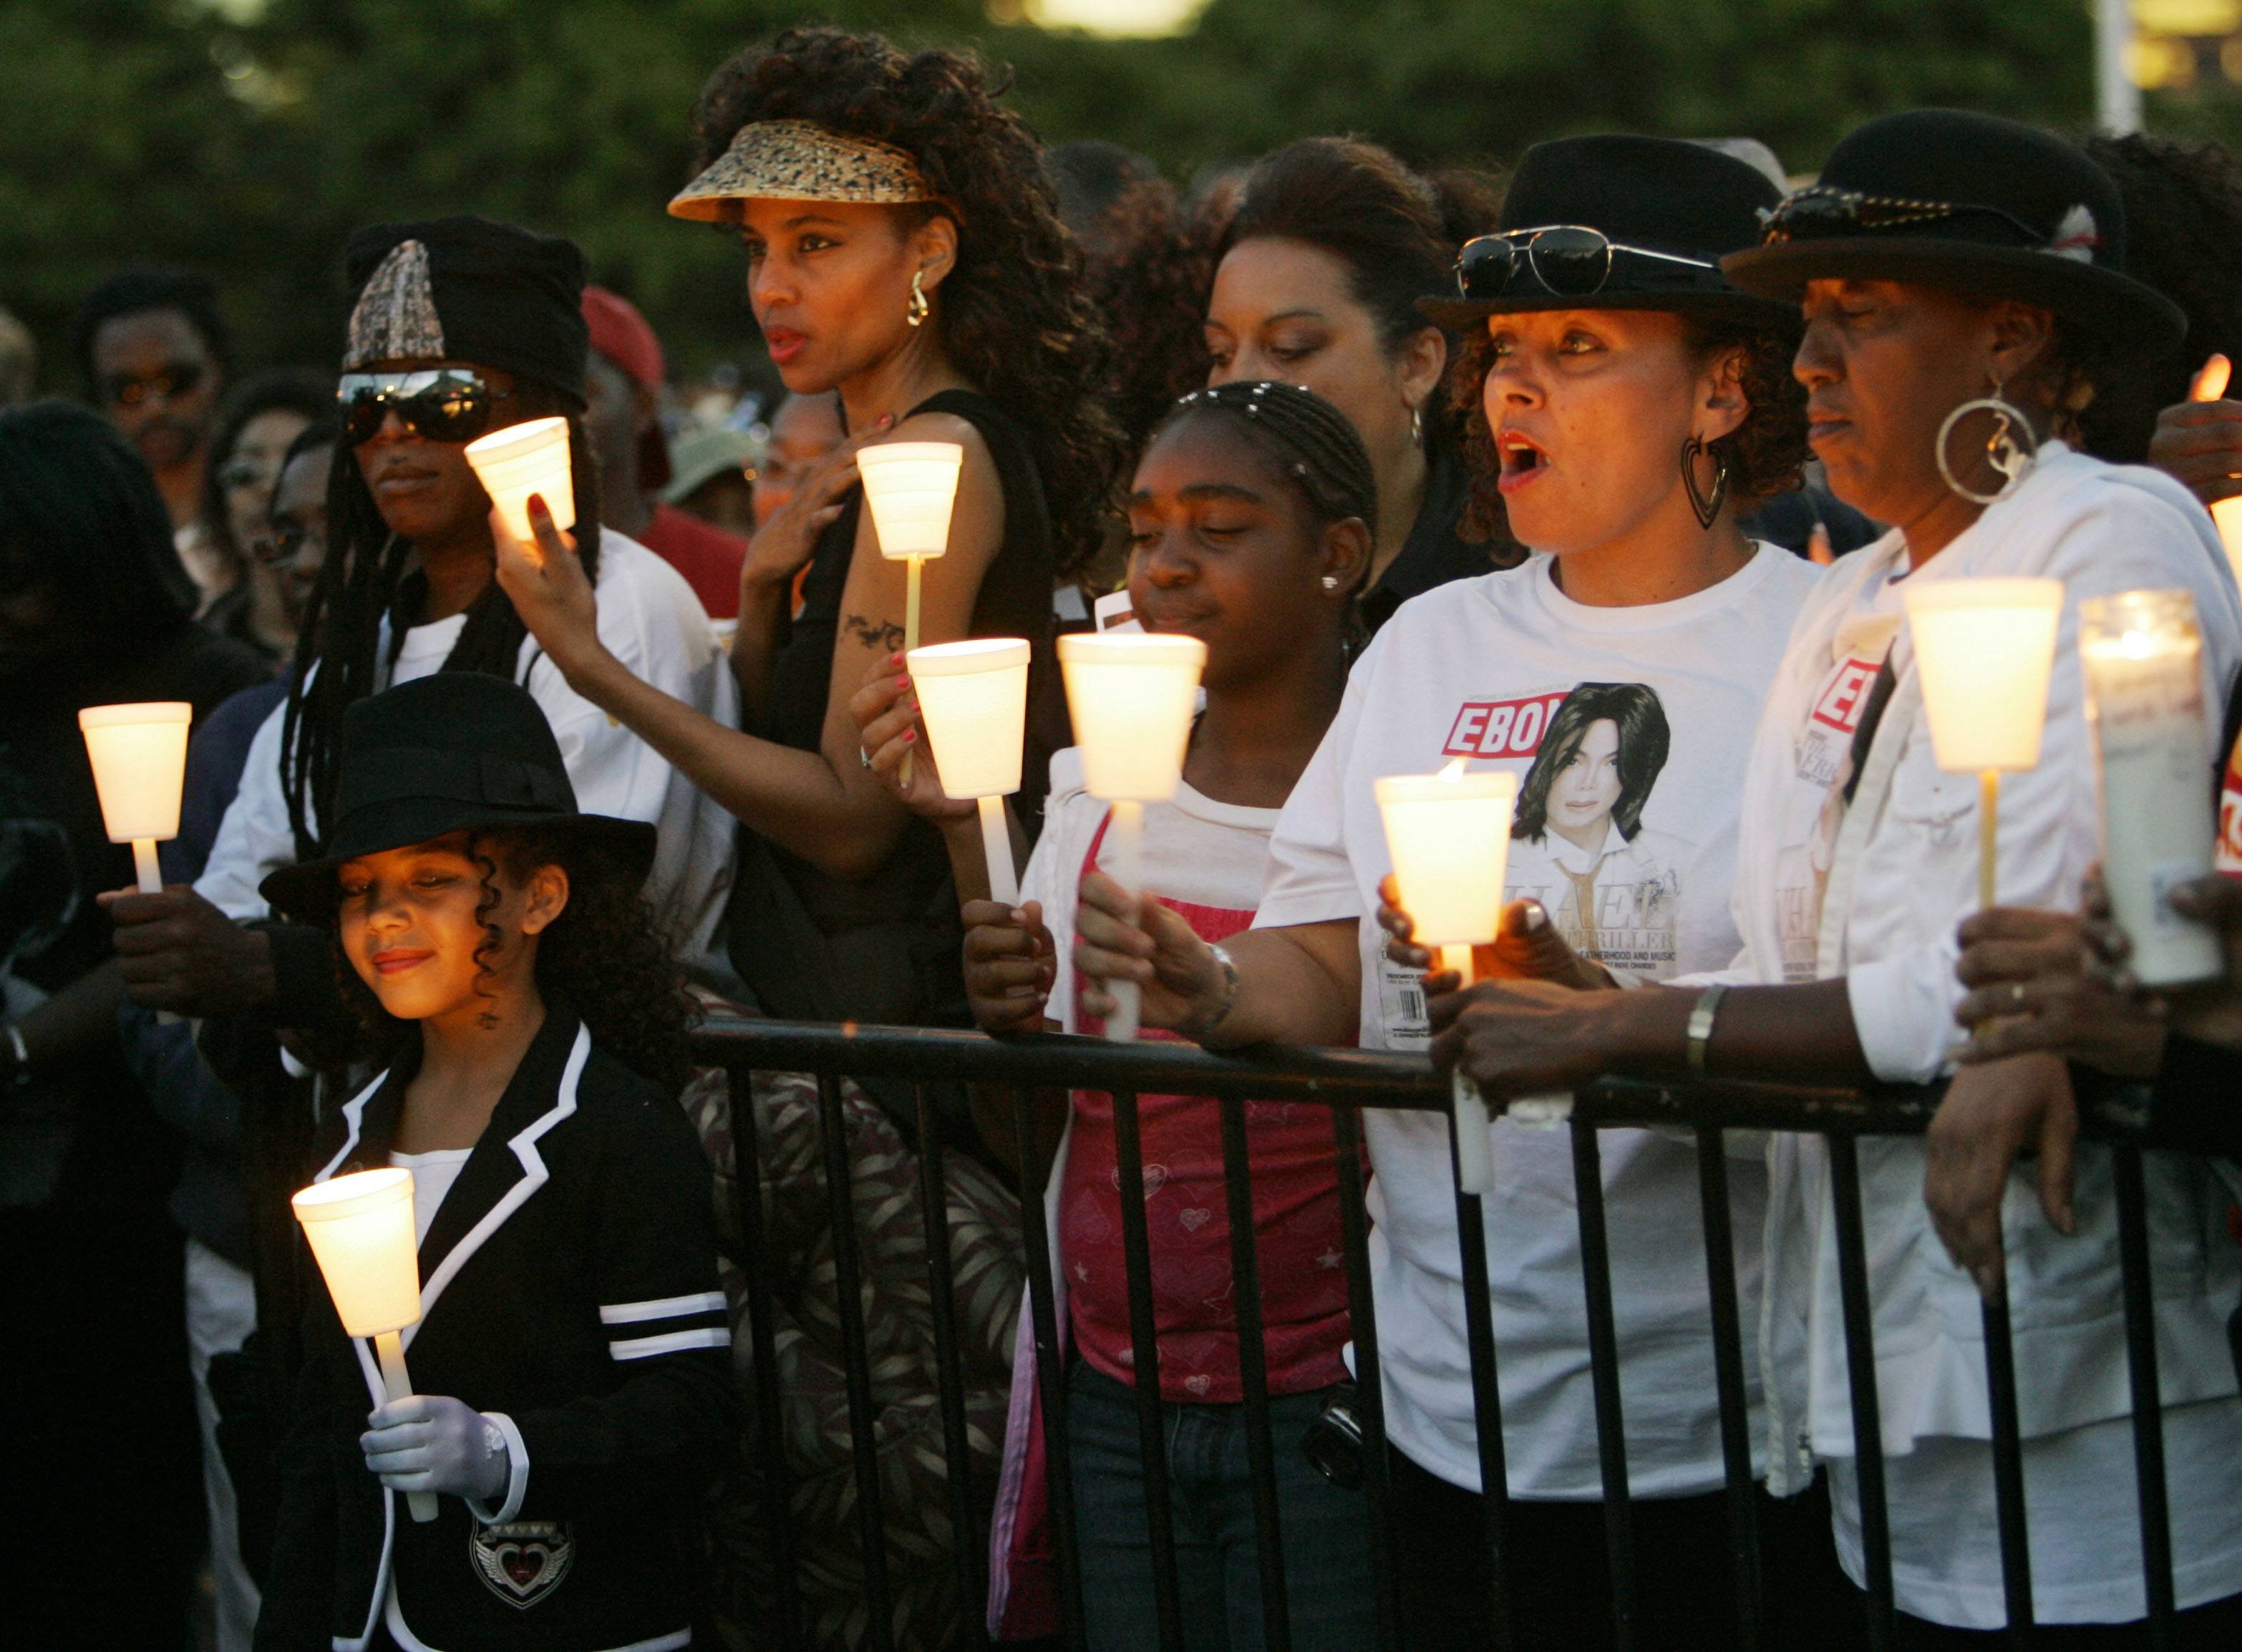 Several hundred fans held a candlelight vigil for pop star Michael Jackson in front of the Rock and Roll Hall of Fame in Cleveland. Jackson's fervent fans plan to commemorate the 5-year anniversary of his death, June 25, 2014, with worldwide events.